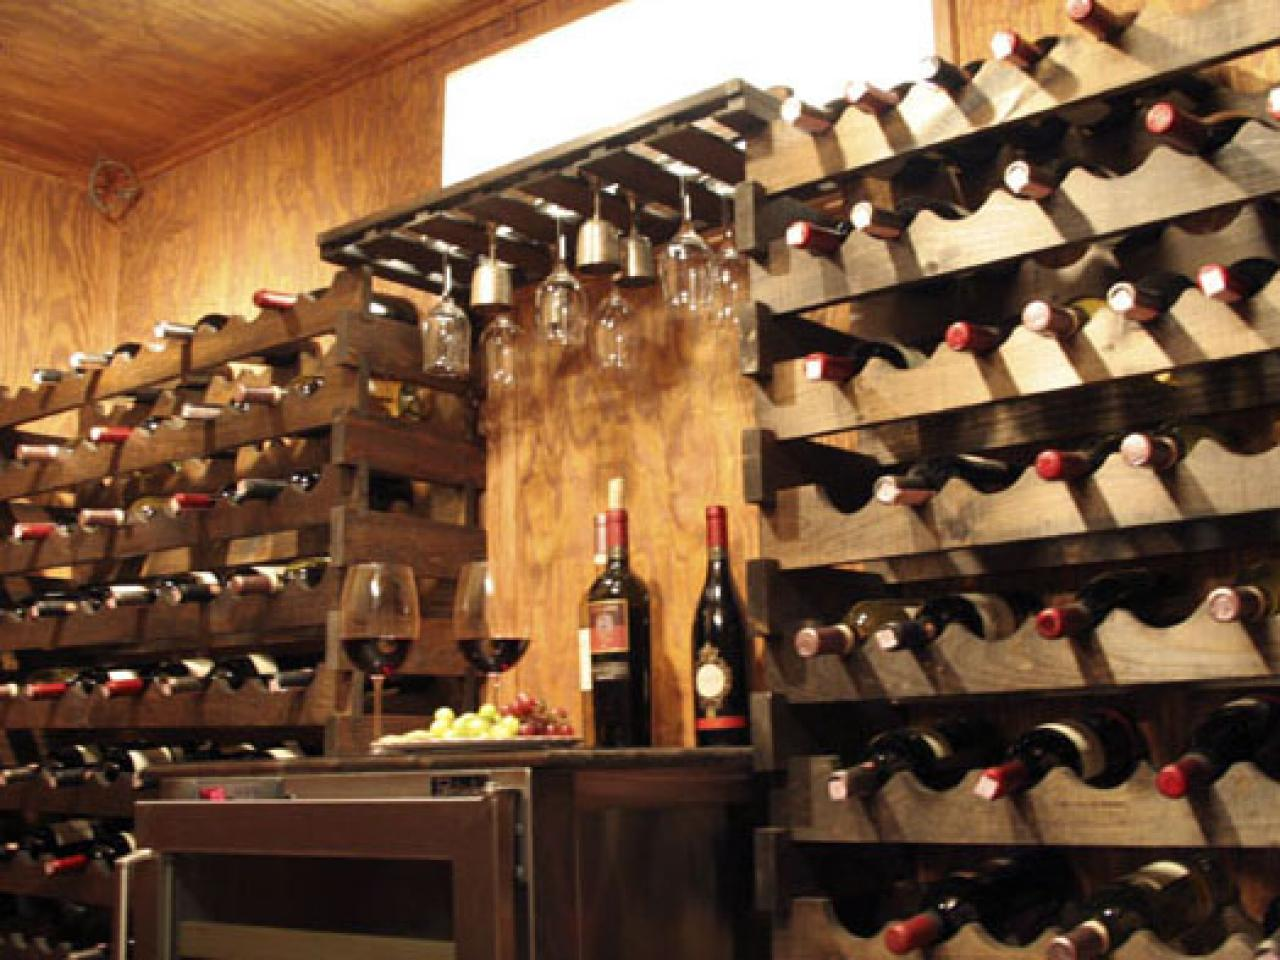 How to build a wine cellar hgtv for Building wine cellar